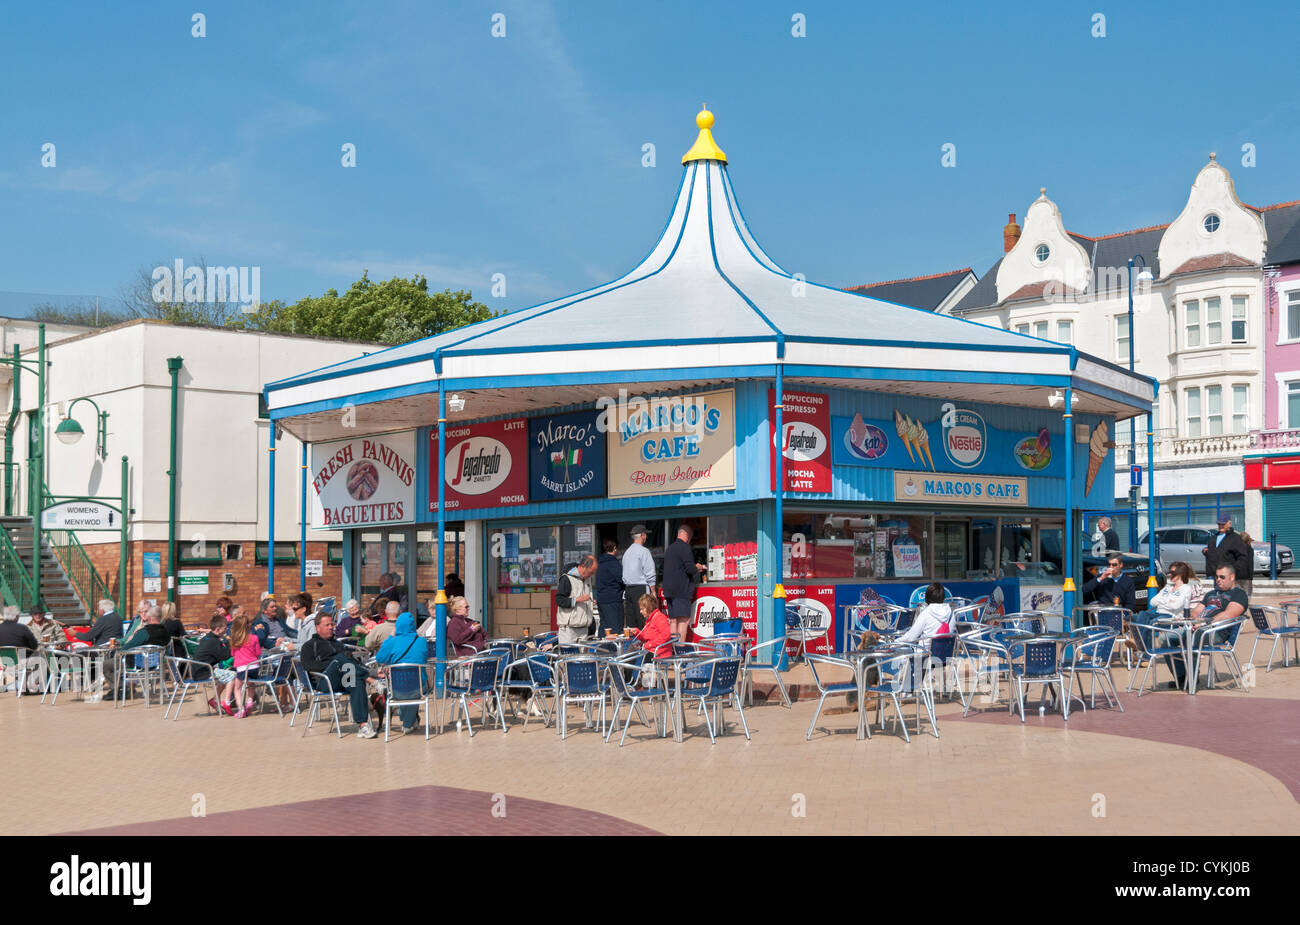 Wales, Barry Island, seaside resort, Marco's Cafe - Stock Image